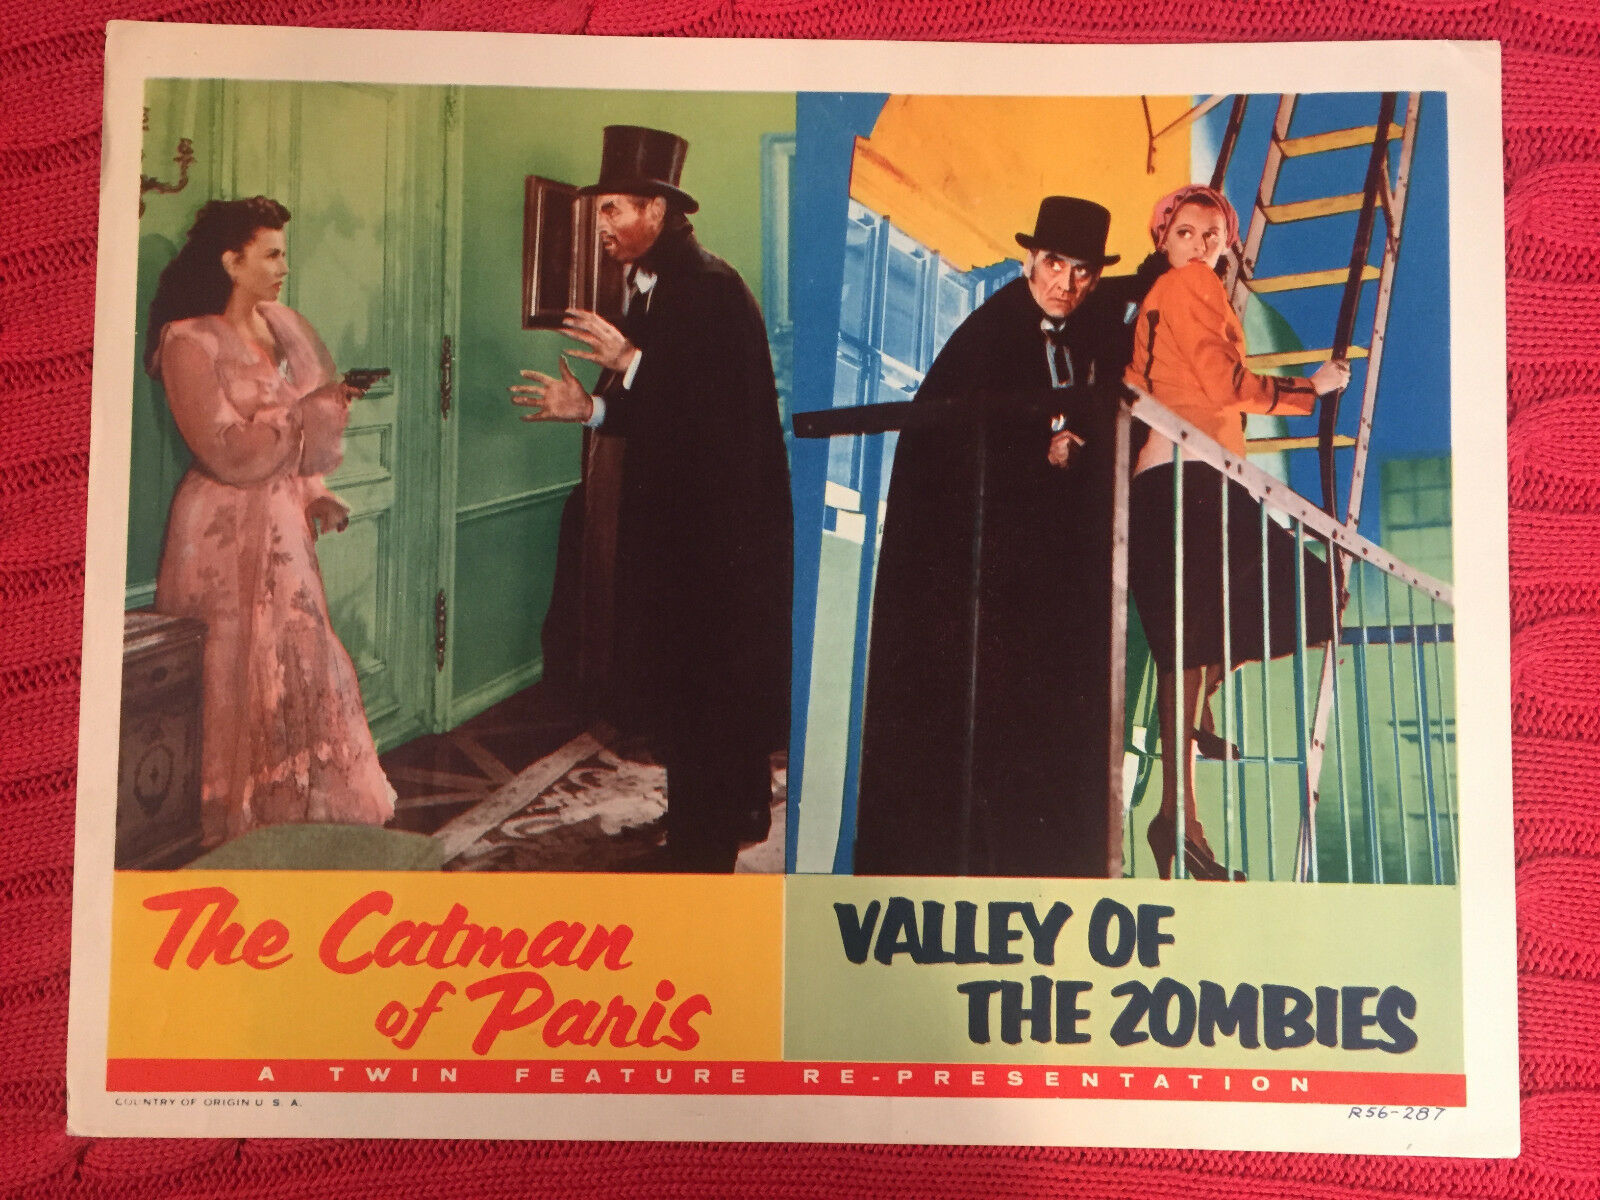 The catman of paris/ valley of the zombies 1956 rr horror lobby card carl esmond